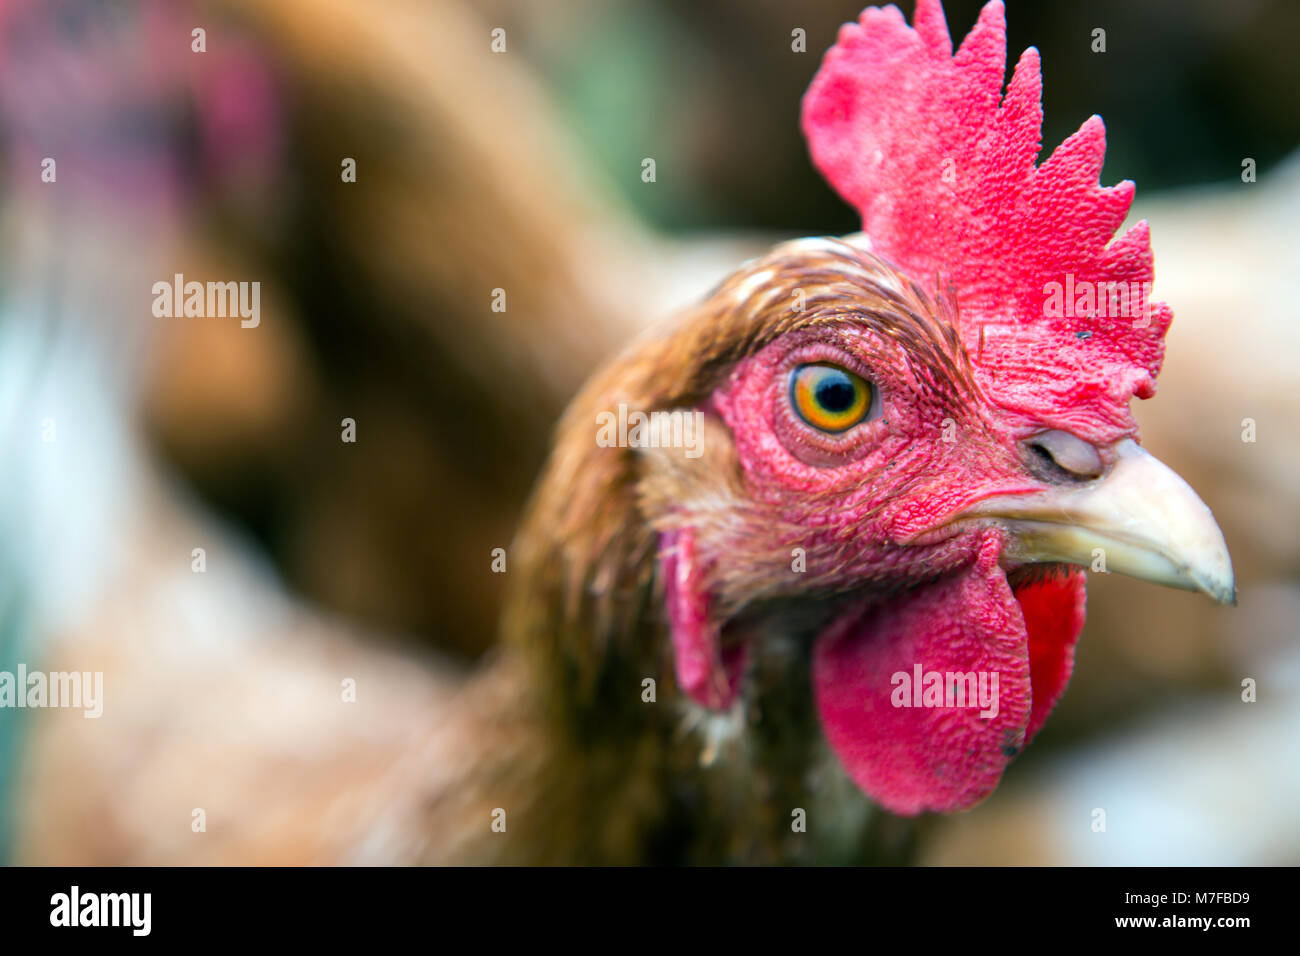 Chicken on a farm with a dog looking after them - Stock Image